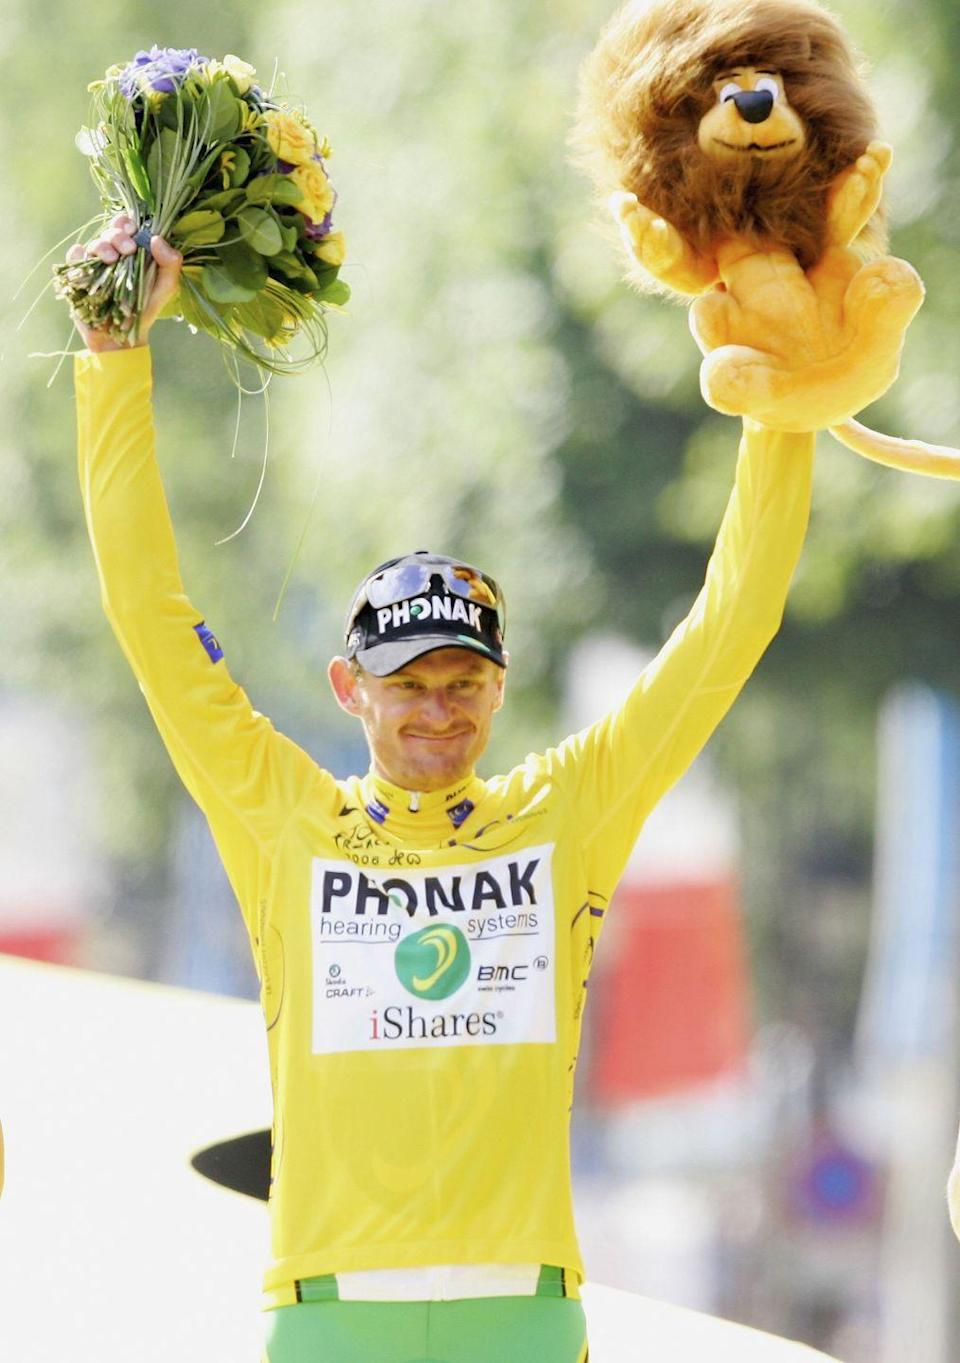 """<p>A year after <a href=""""https://www.bicycling.com/culture/a32660148/lance-armstrong-espn-30-for-30-documentary-part-i/"""" rel=""""nofollow noopener"""" target=""""_blank"""" data-ylk=""""slk:Lance Armstrong"""" class=""""link rapid-noclick-resp"""">Lance Armstrong</a>'s retirement, it looked like the trend of American winners might continue when Floyd Landis took the yellow jersey on Stage 11. But just two stages later, the longest stage of the Tour on a boiling hot day in southern France, Landis lost the lead in stunning fashion to what the Italians call a <em>fuga bidone</em>: a long, innocent-looking break that contains a high-quality rider.</p><p>Landis would regain the lead on Stage 15 on the Alpe d'Huez finish, but the next day, Landis suffered a shocking 10-minute crack on the summit finish to la Toussuire and dropped out of the top 10.</p><p>What happened on Stage 17 should've been the stuff of legend: Landis set his team on the front on the first big climb, more than 100 kilometers from the finish. With the group whittled down, he launched a solo attack, catching up to and eventually dropping the early breakaway and powering over four summits to the finish in Morzine almost six minutes ahead of the chase. The raid vaulted him back to third overall, just 30 seconds behind Oscar Pereiro, the leader at the time. Landis regained yellow only on the penultimate time trial despite a valiant defense by Pereiro, and rode triumphantly to Paris with one of the slimmest leads in race history—57 seconds.</p><p>Then, days later, disaster: a positive test for testosterone. Landis denied and fought the charge, but ultimately lost his title and was banned for two years; Pereiro was declared the winner. The sport essentially shunned Landis even after his ban elapsed, which set in motion the fateful turn of events years later that would result in Armstrong's own downfall and life ban for doping.</p>"""